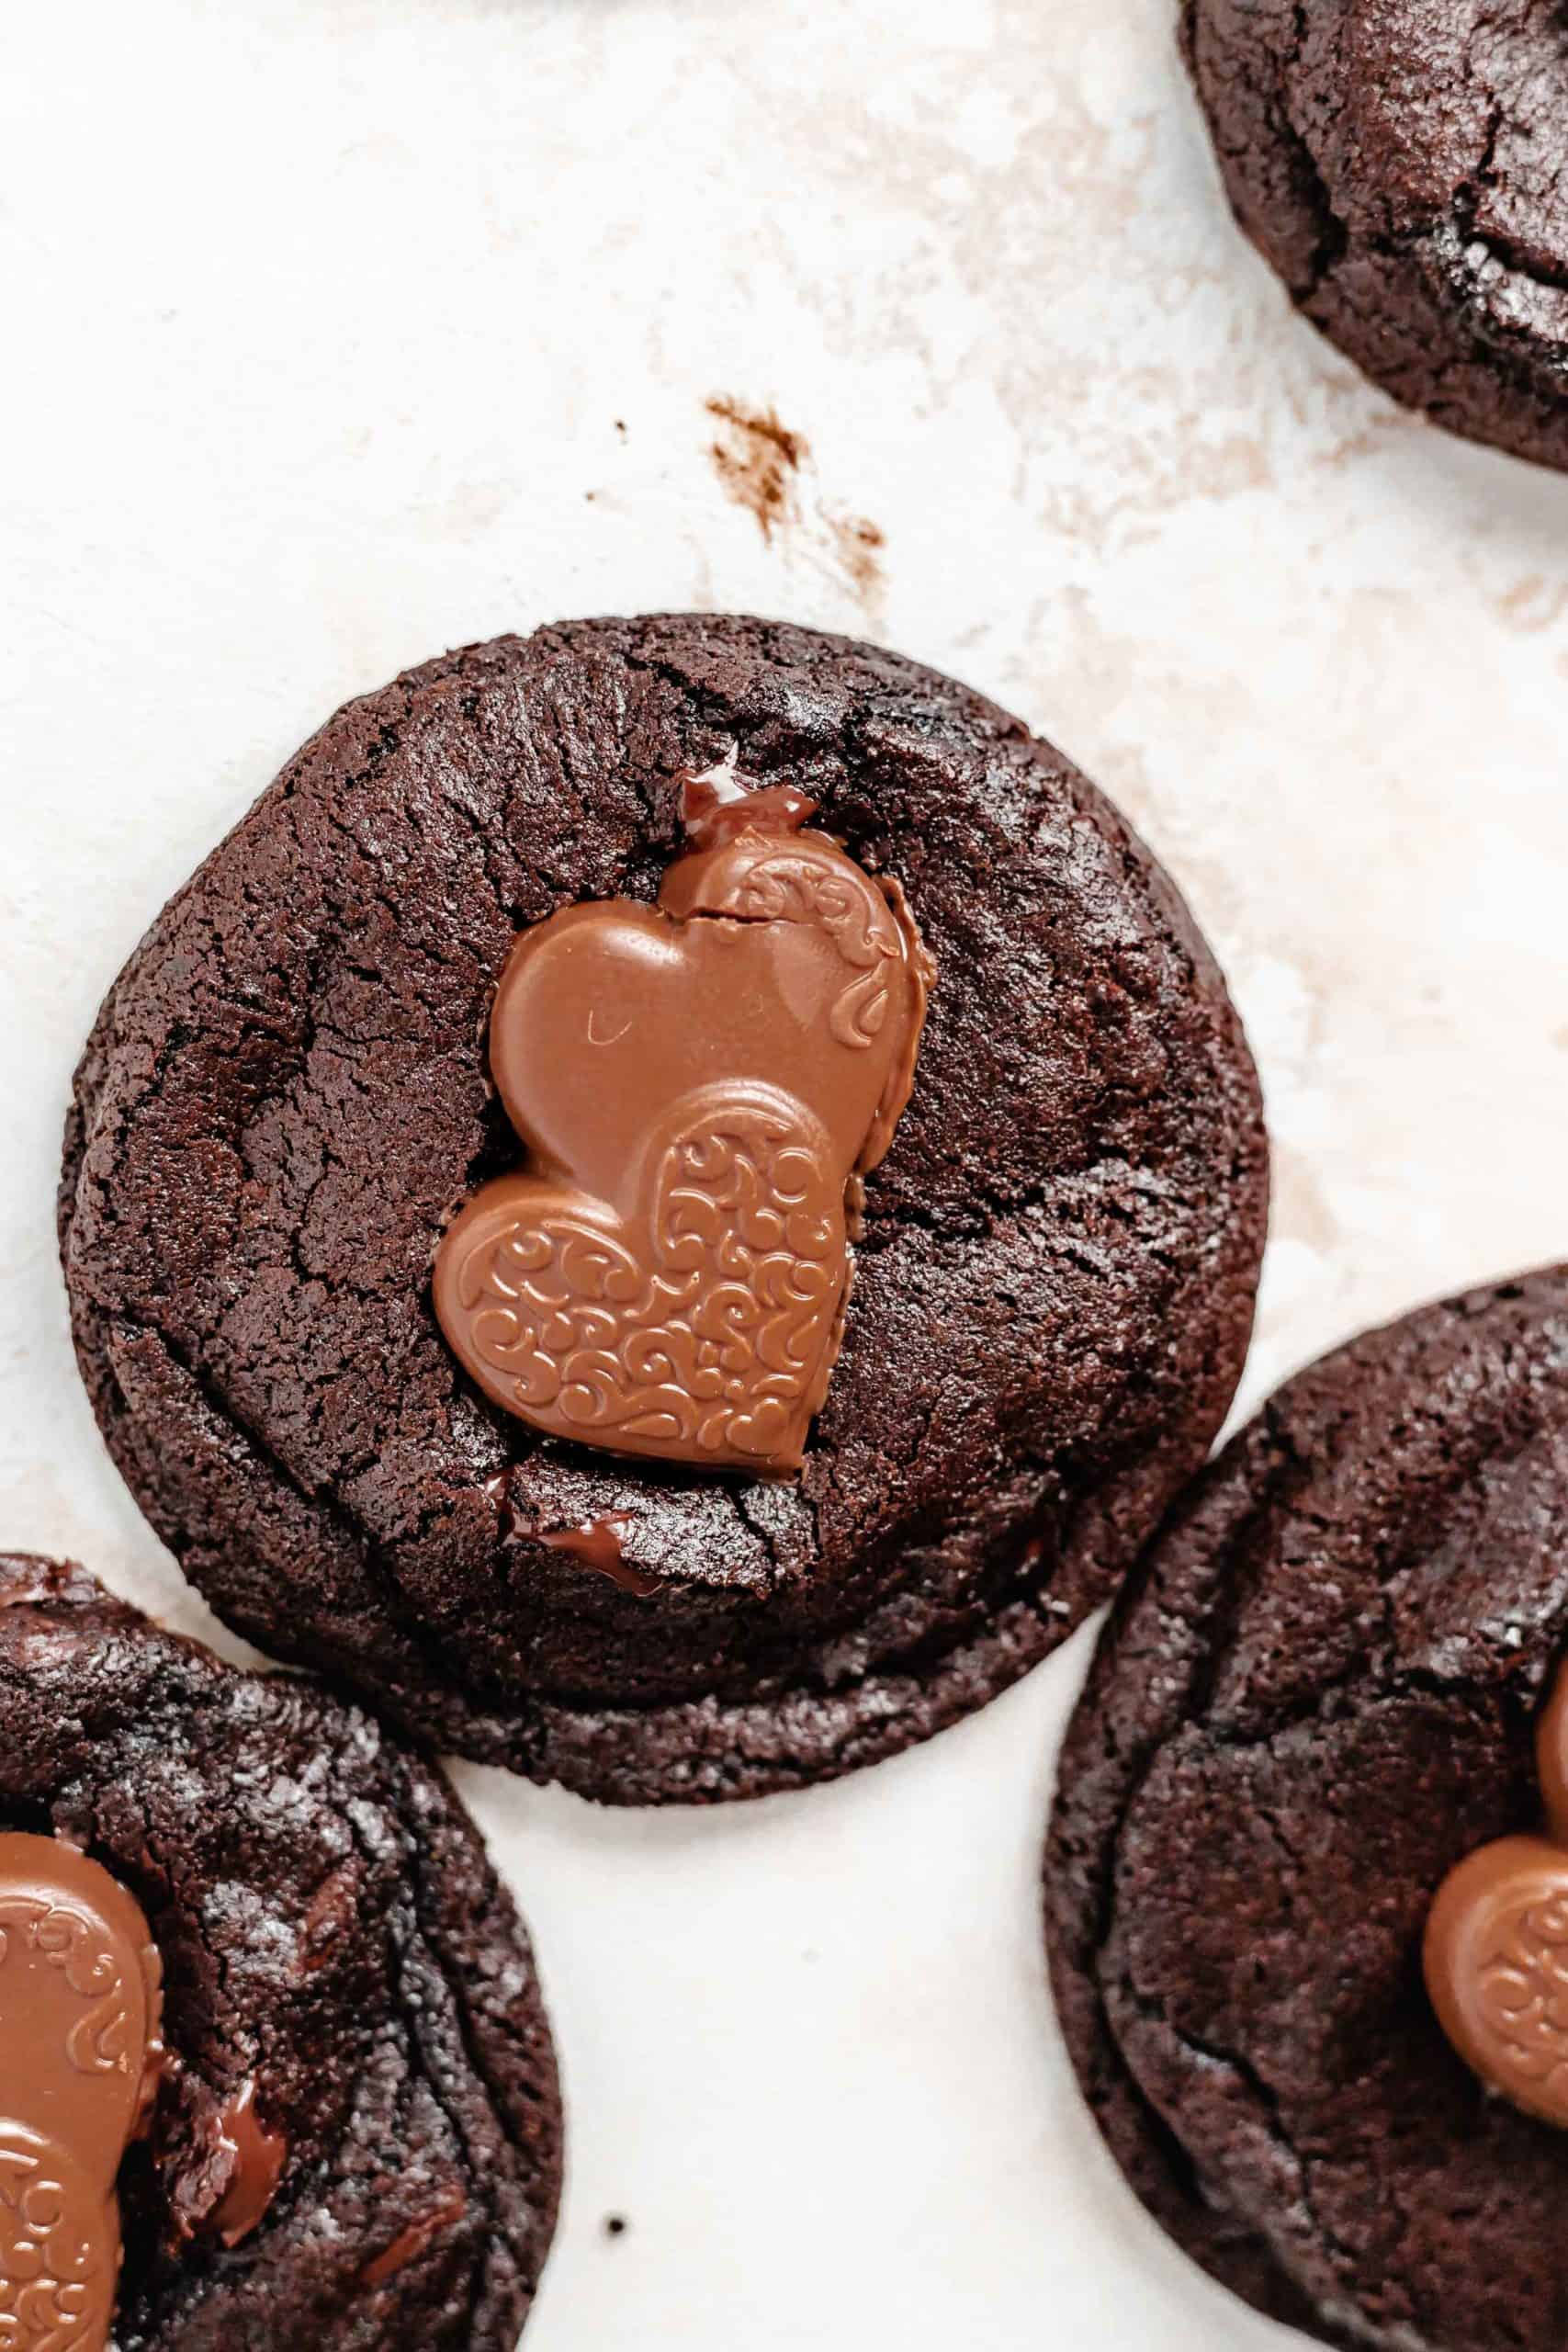 chocolate cookie with caramel filled chocolate hearts